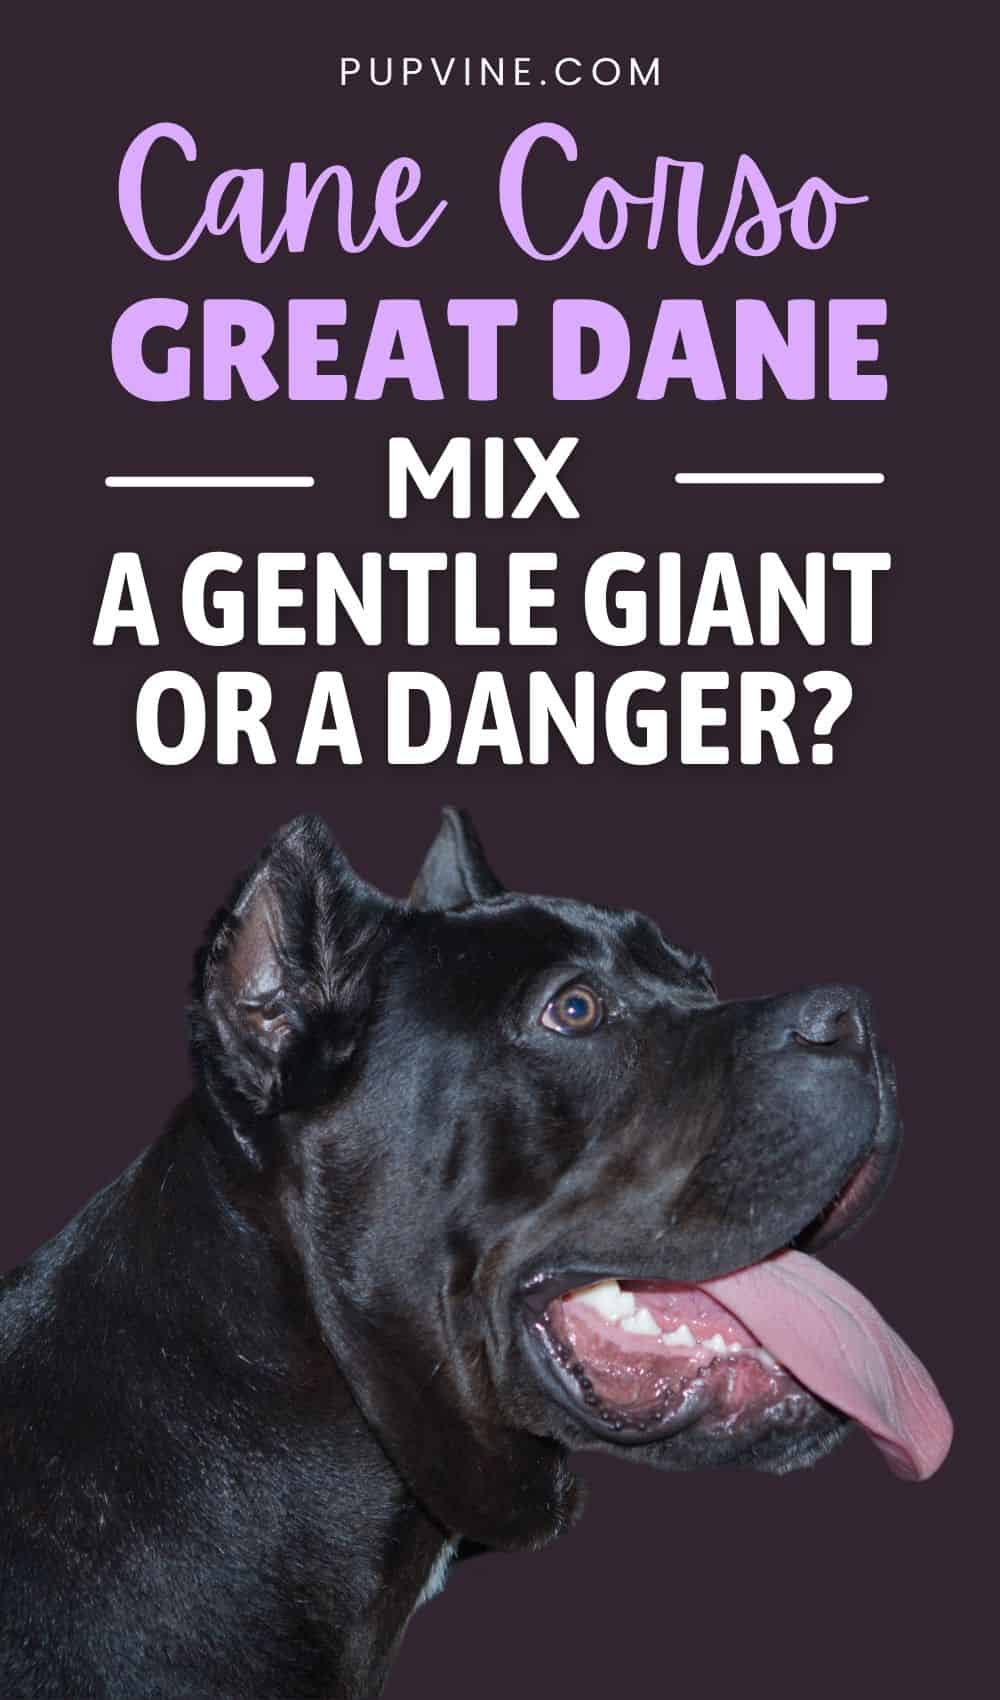 Cane Corso Great Dane Mix – A Gentle Giant Or A Danger?